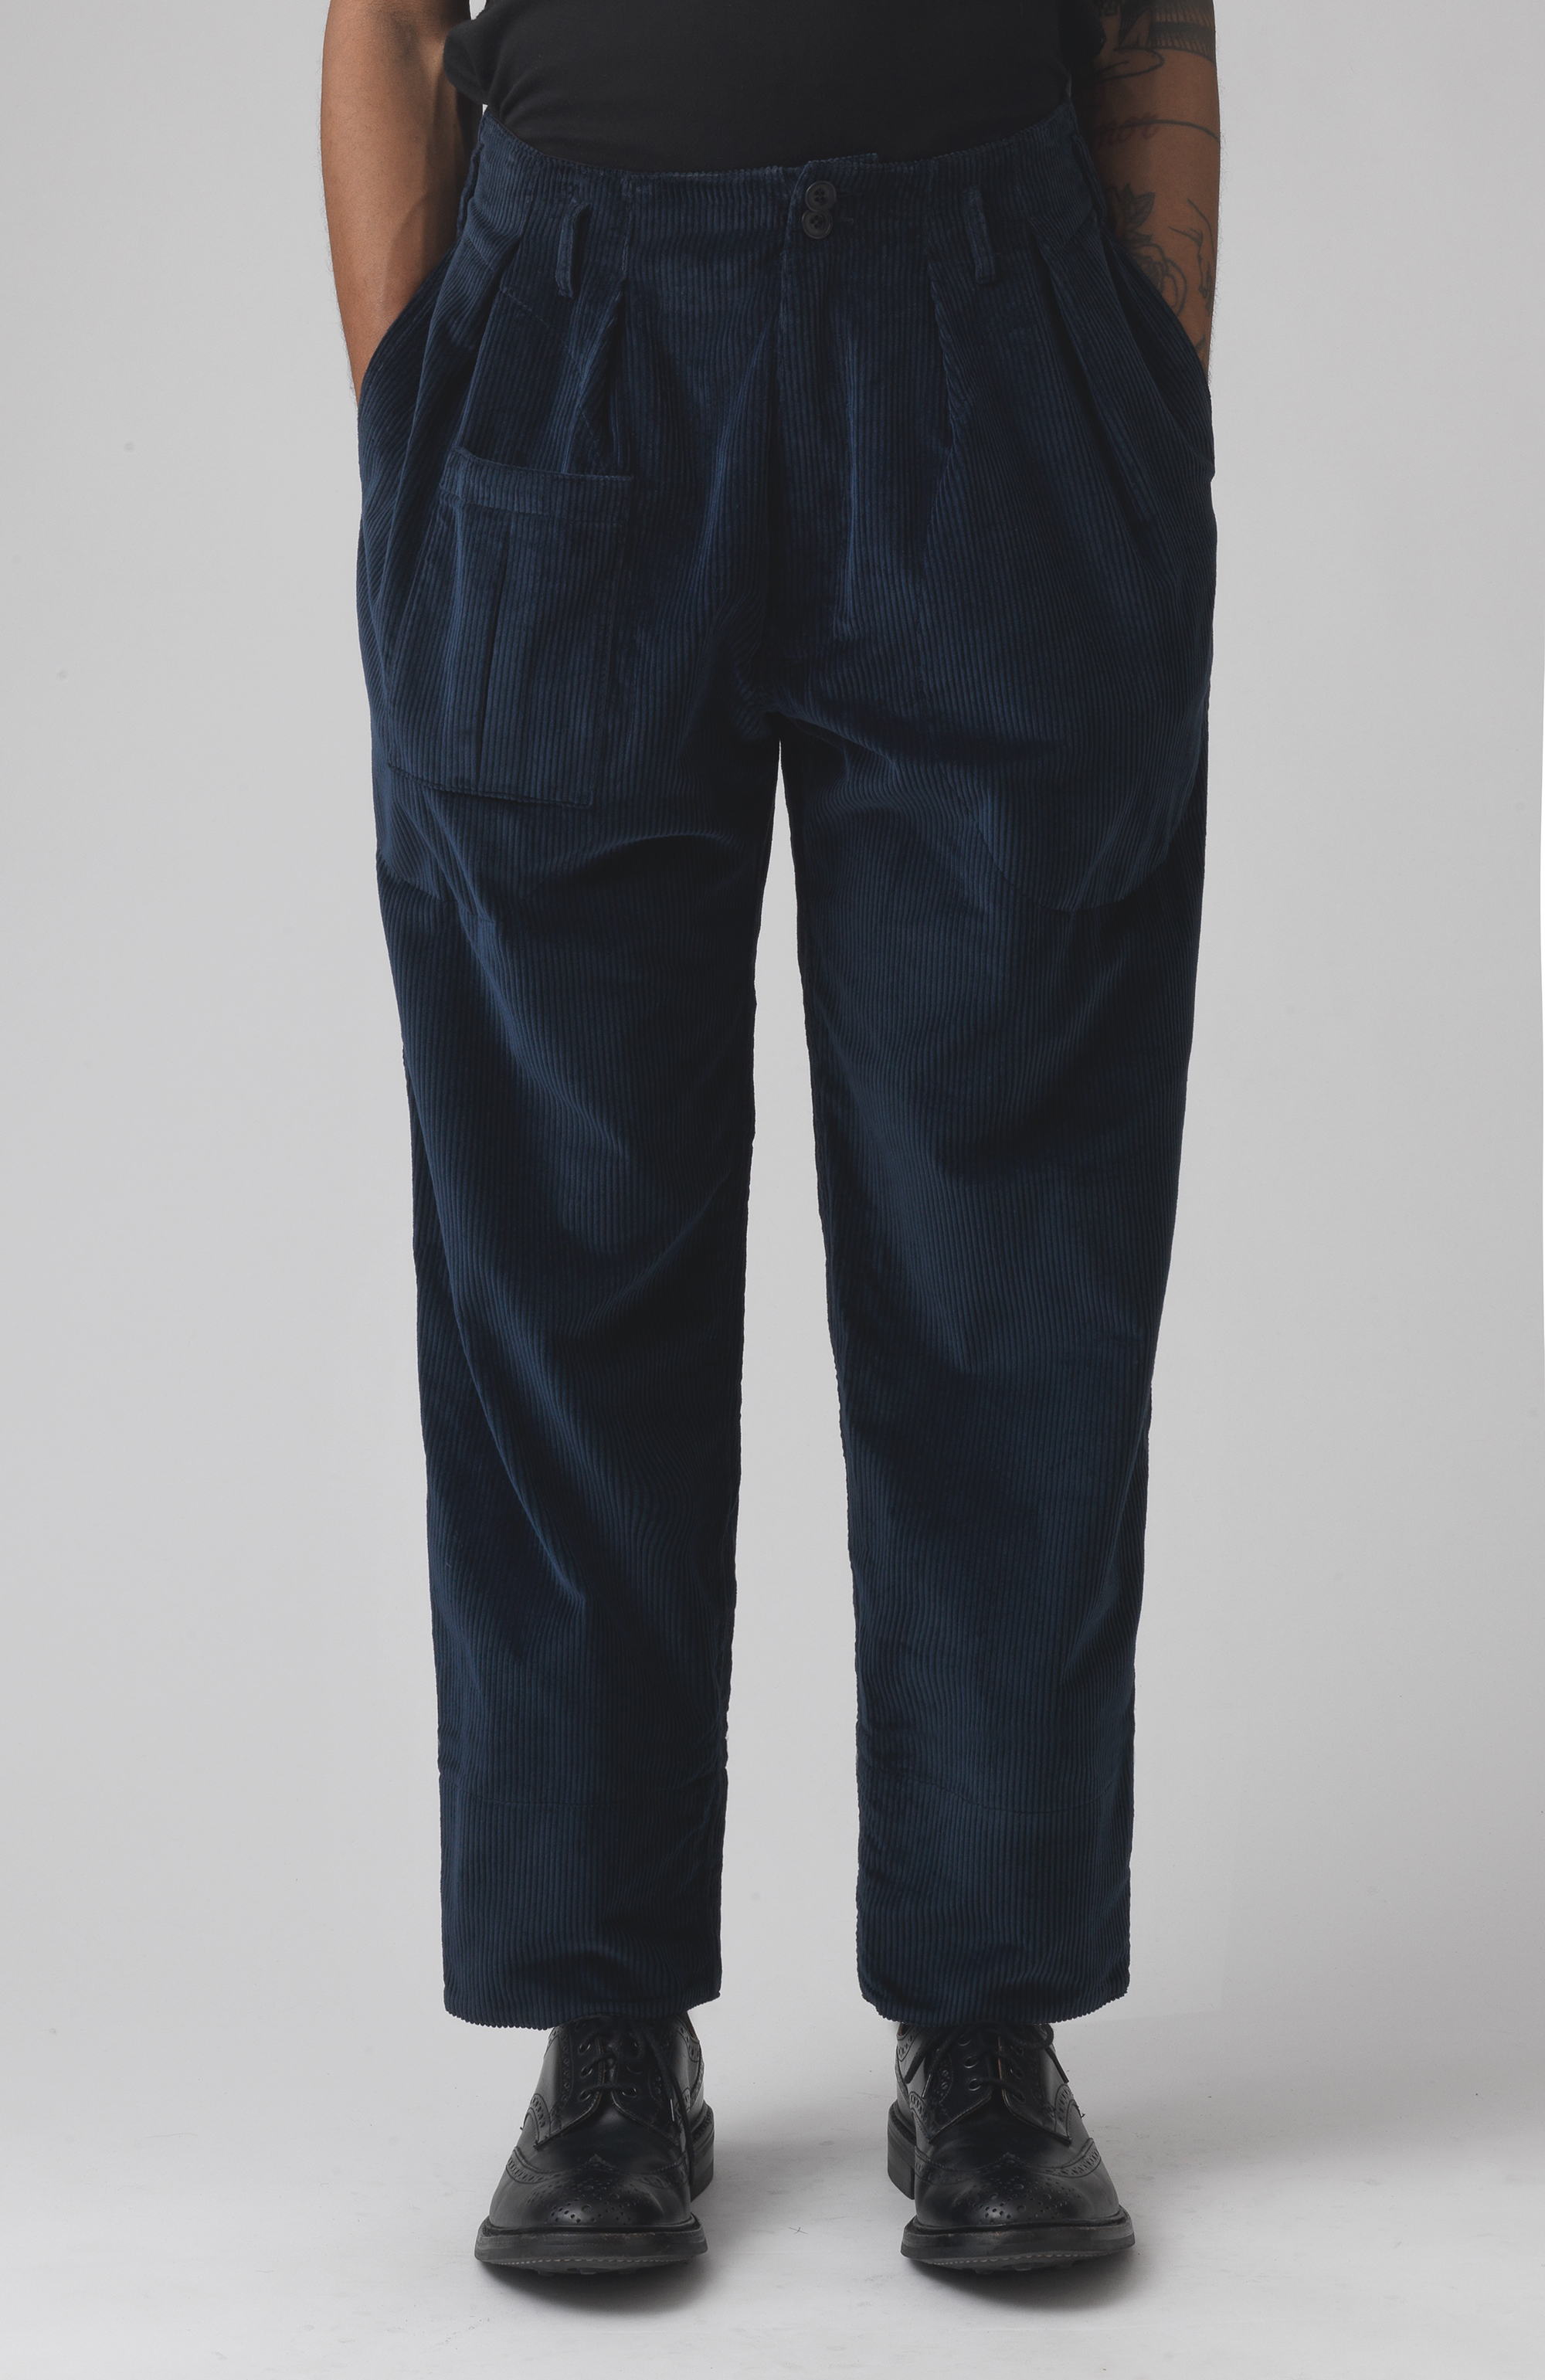 Xam Navy Organic cotton trousers